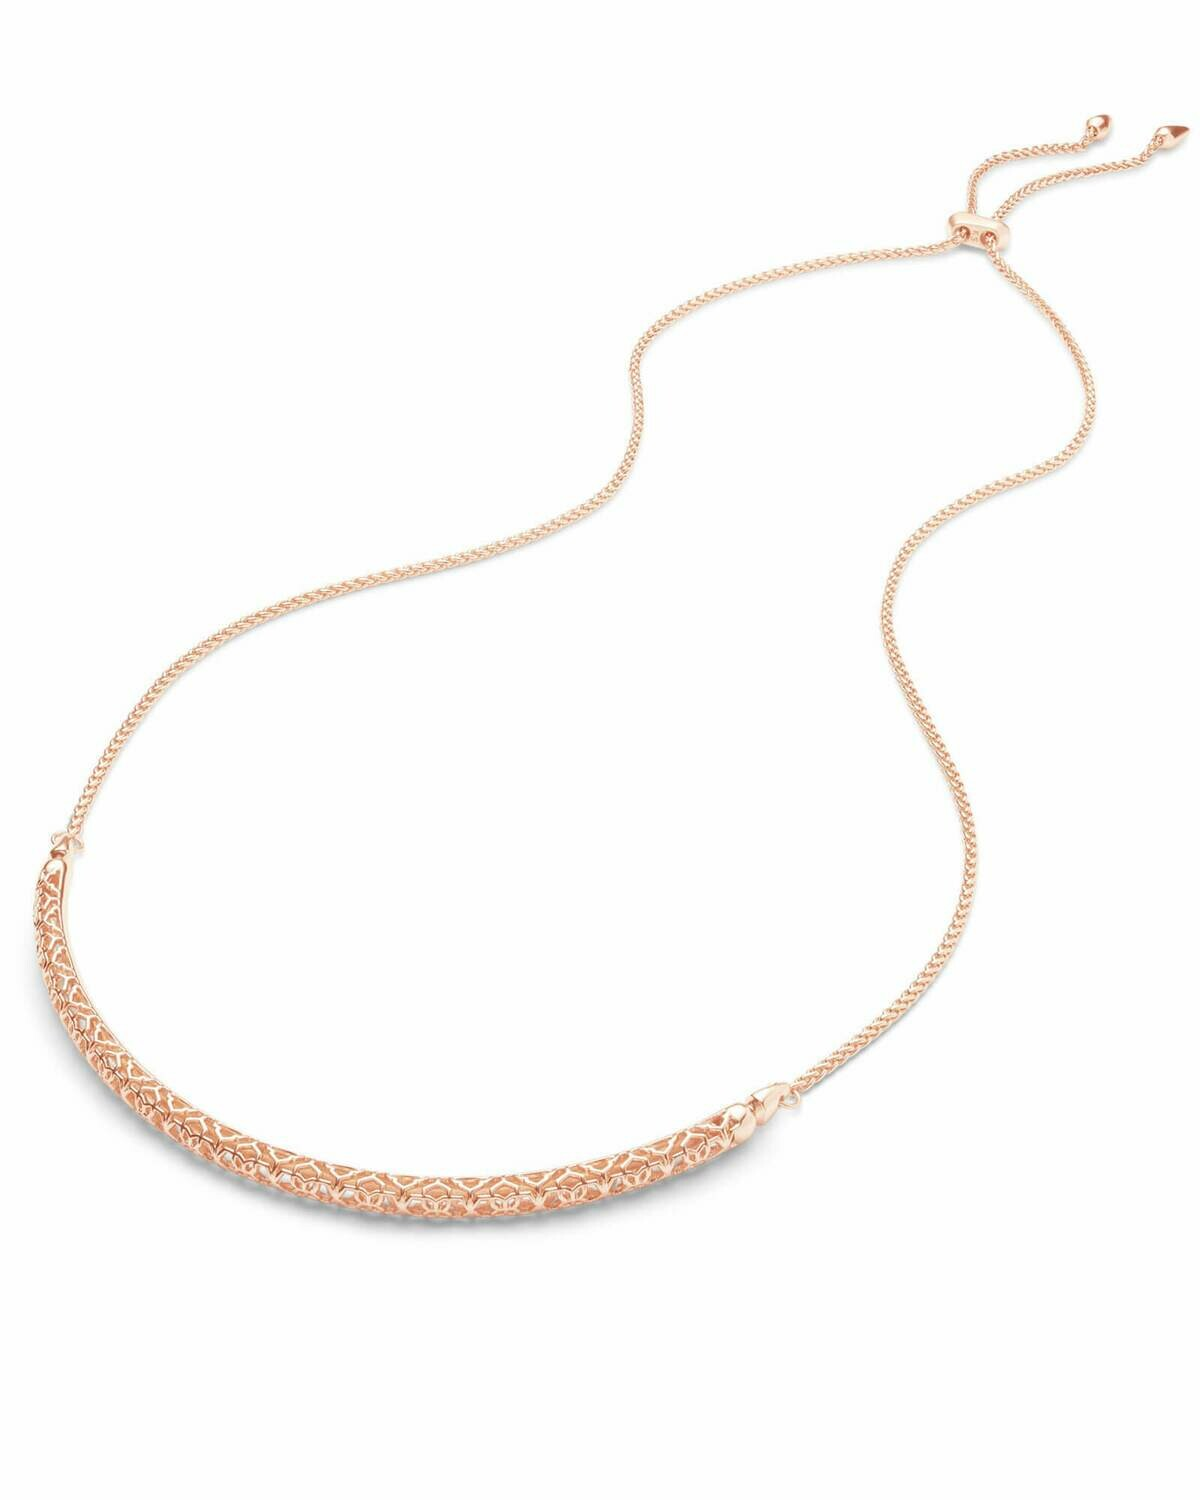 Kendra Scott Goldie Rose Gold Choker Necklace In Rose Gold Filigree